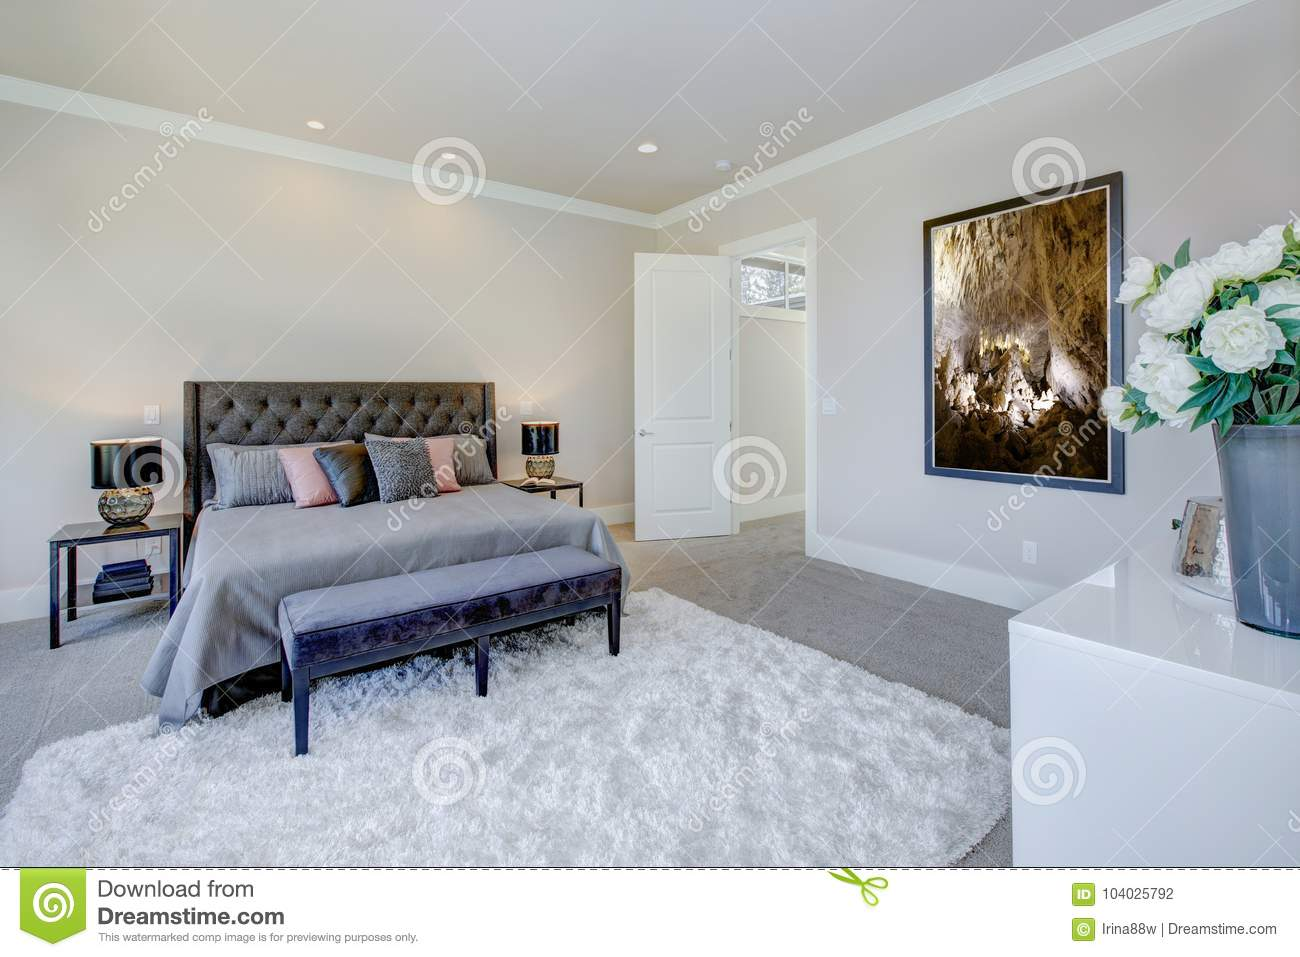 Master Bedroom Interior With King Size Bed Stock Photo - Image of